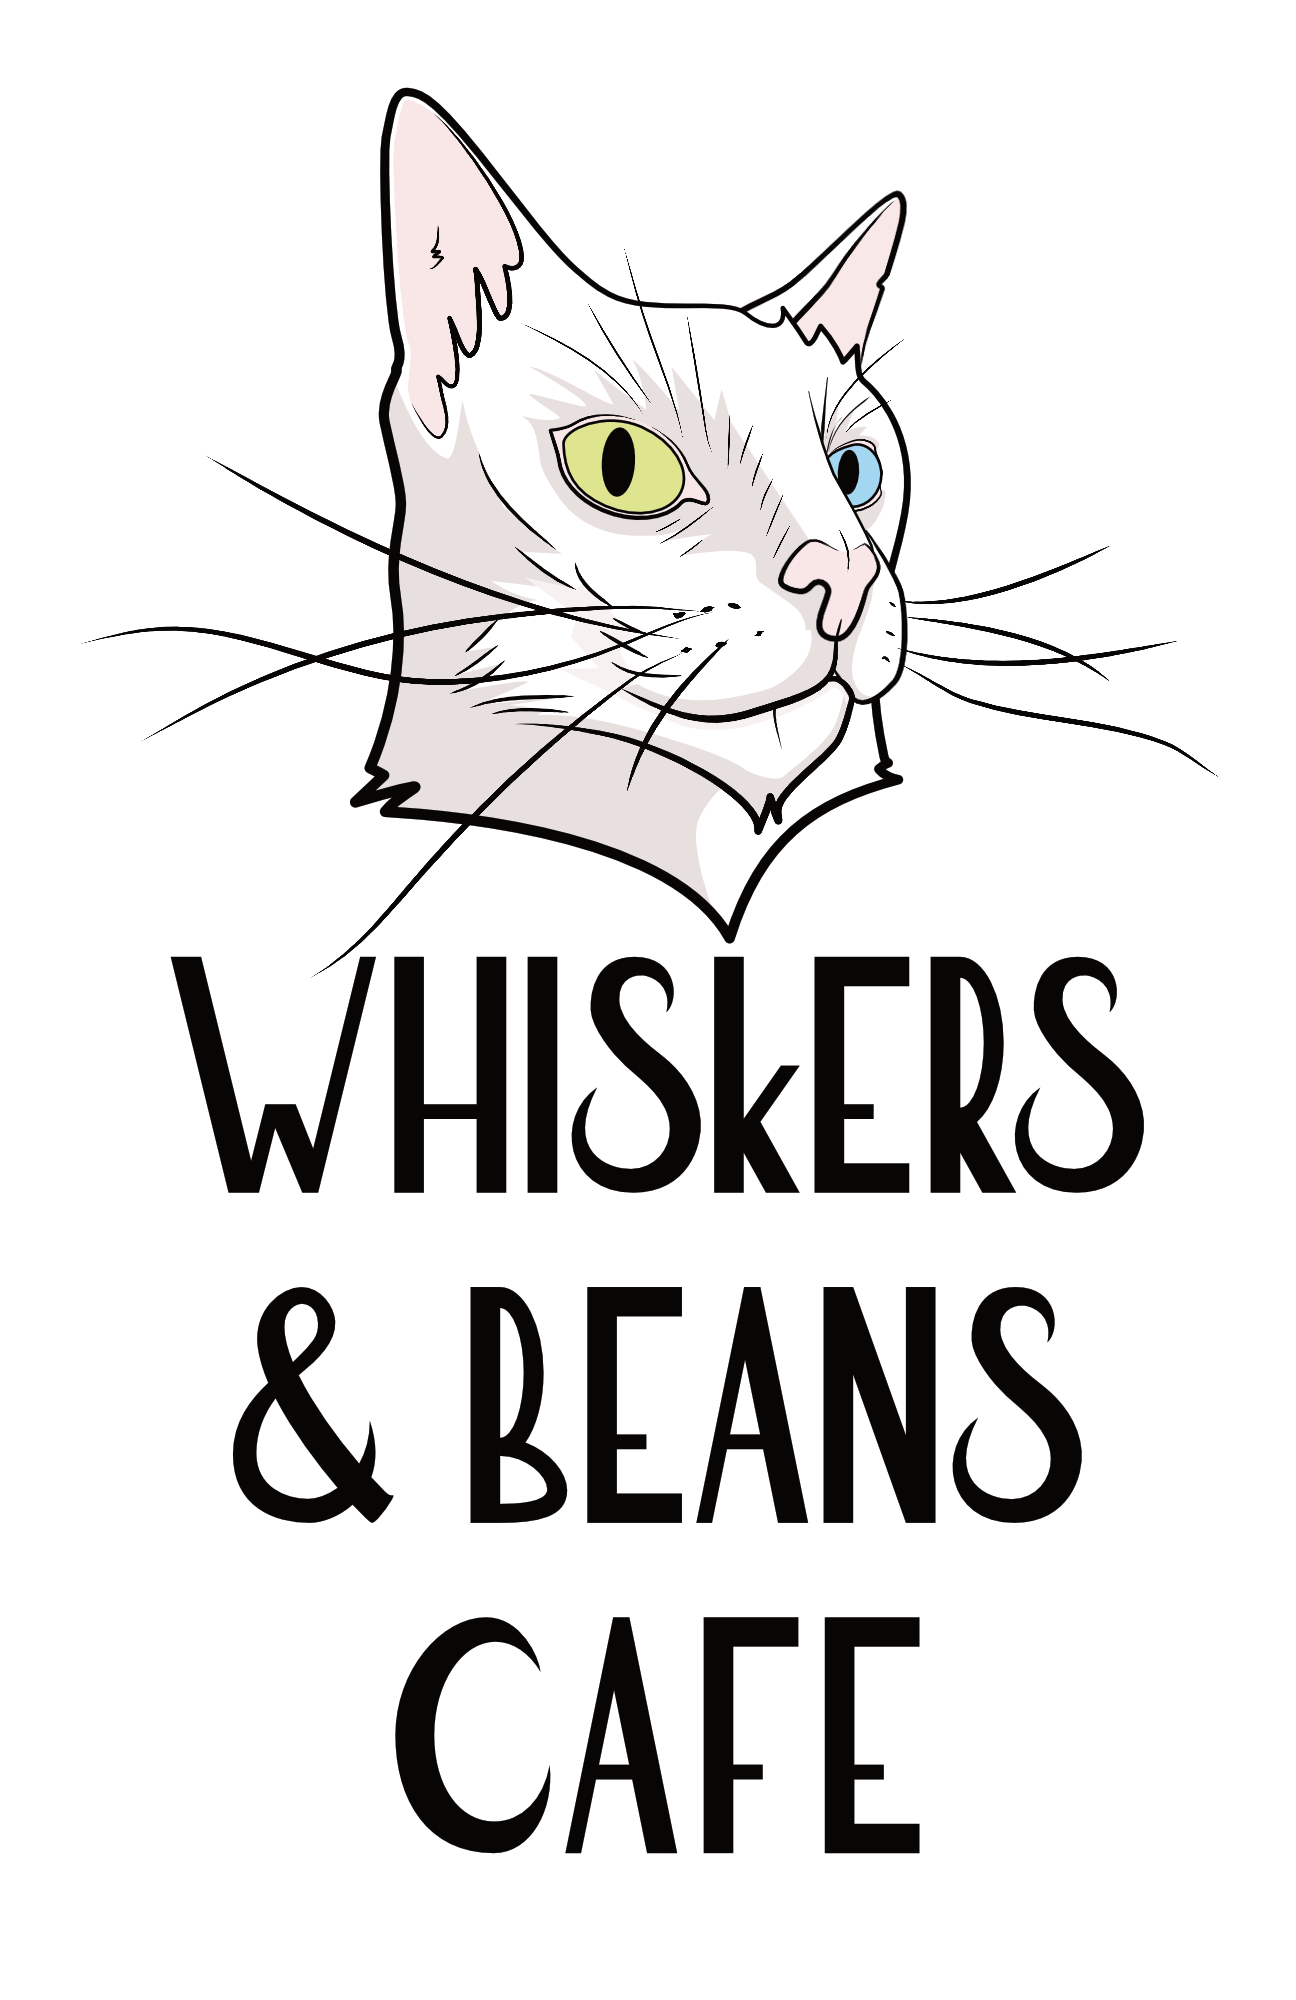 Whiskers & Beans Cafe Logo